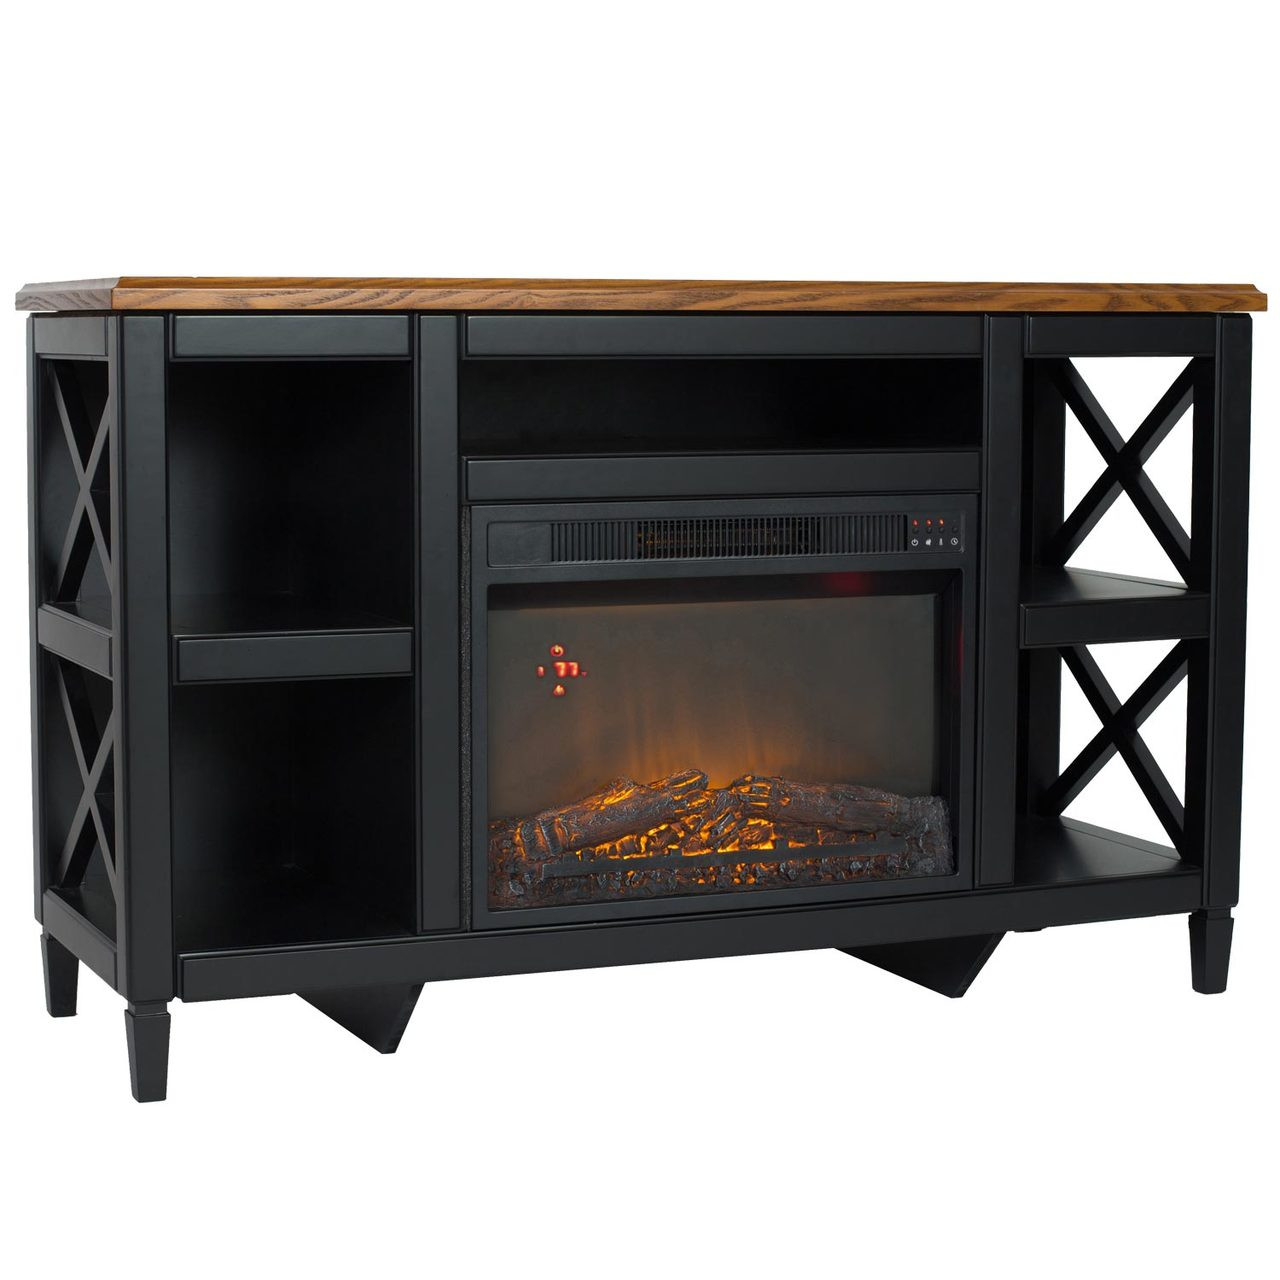 comfort glow qef7541rkd camden media center with infrared quartz